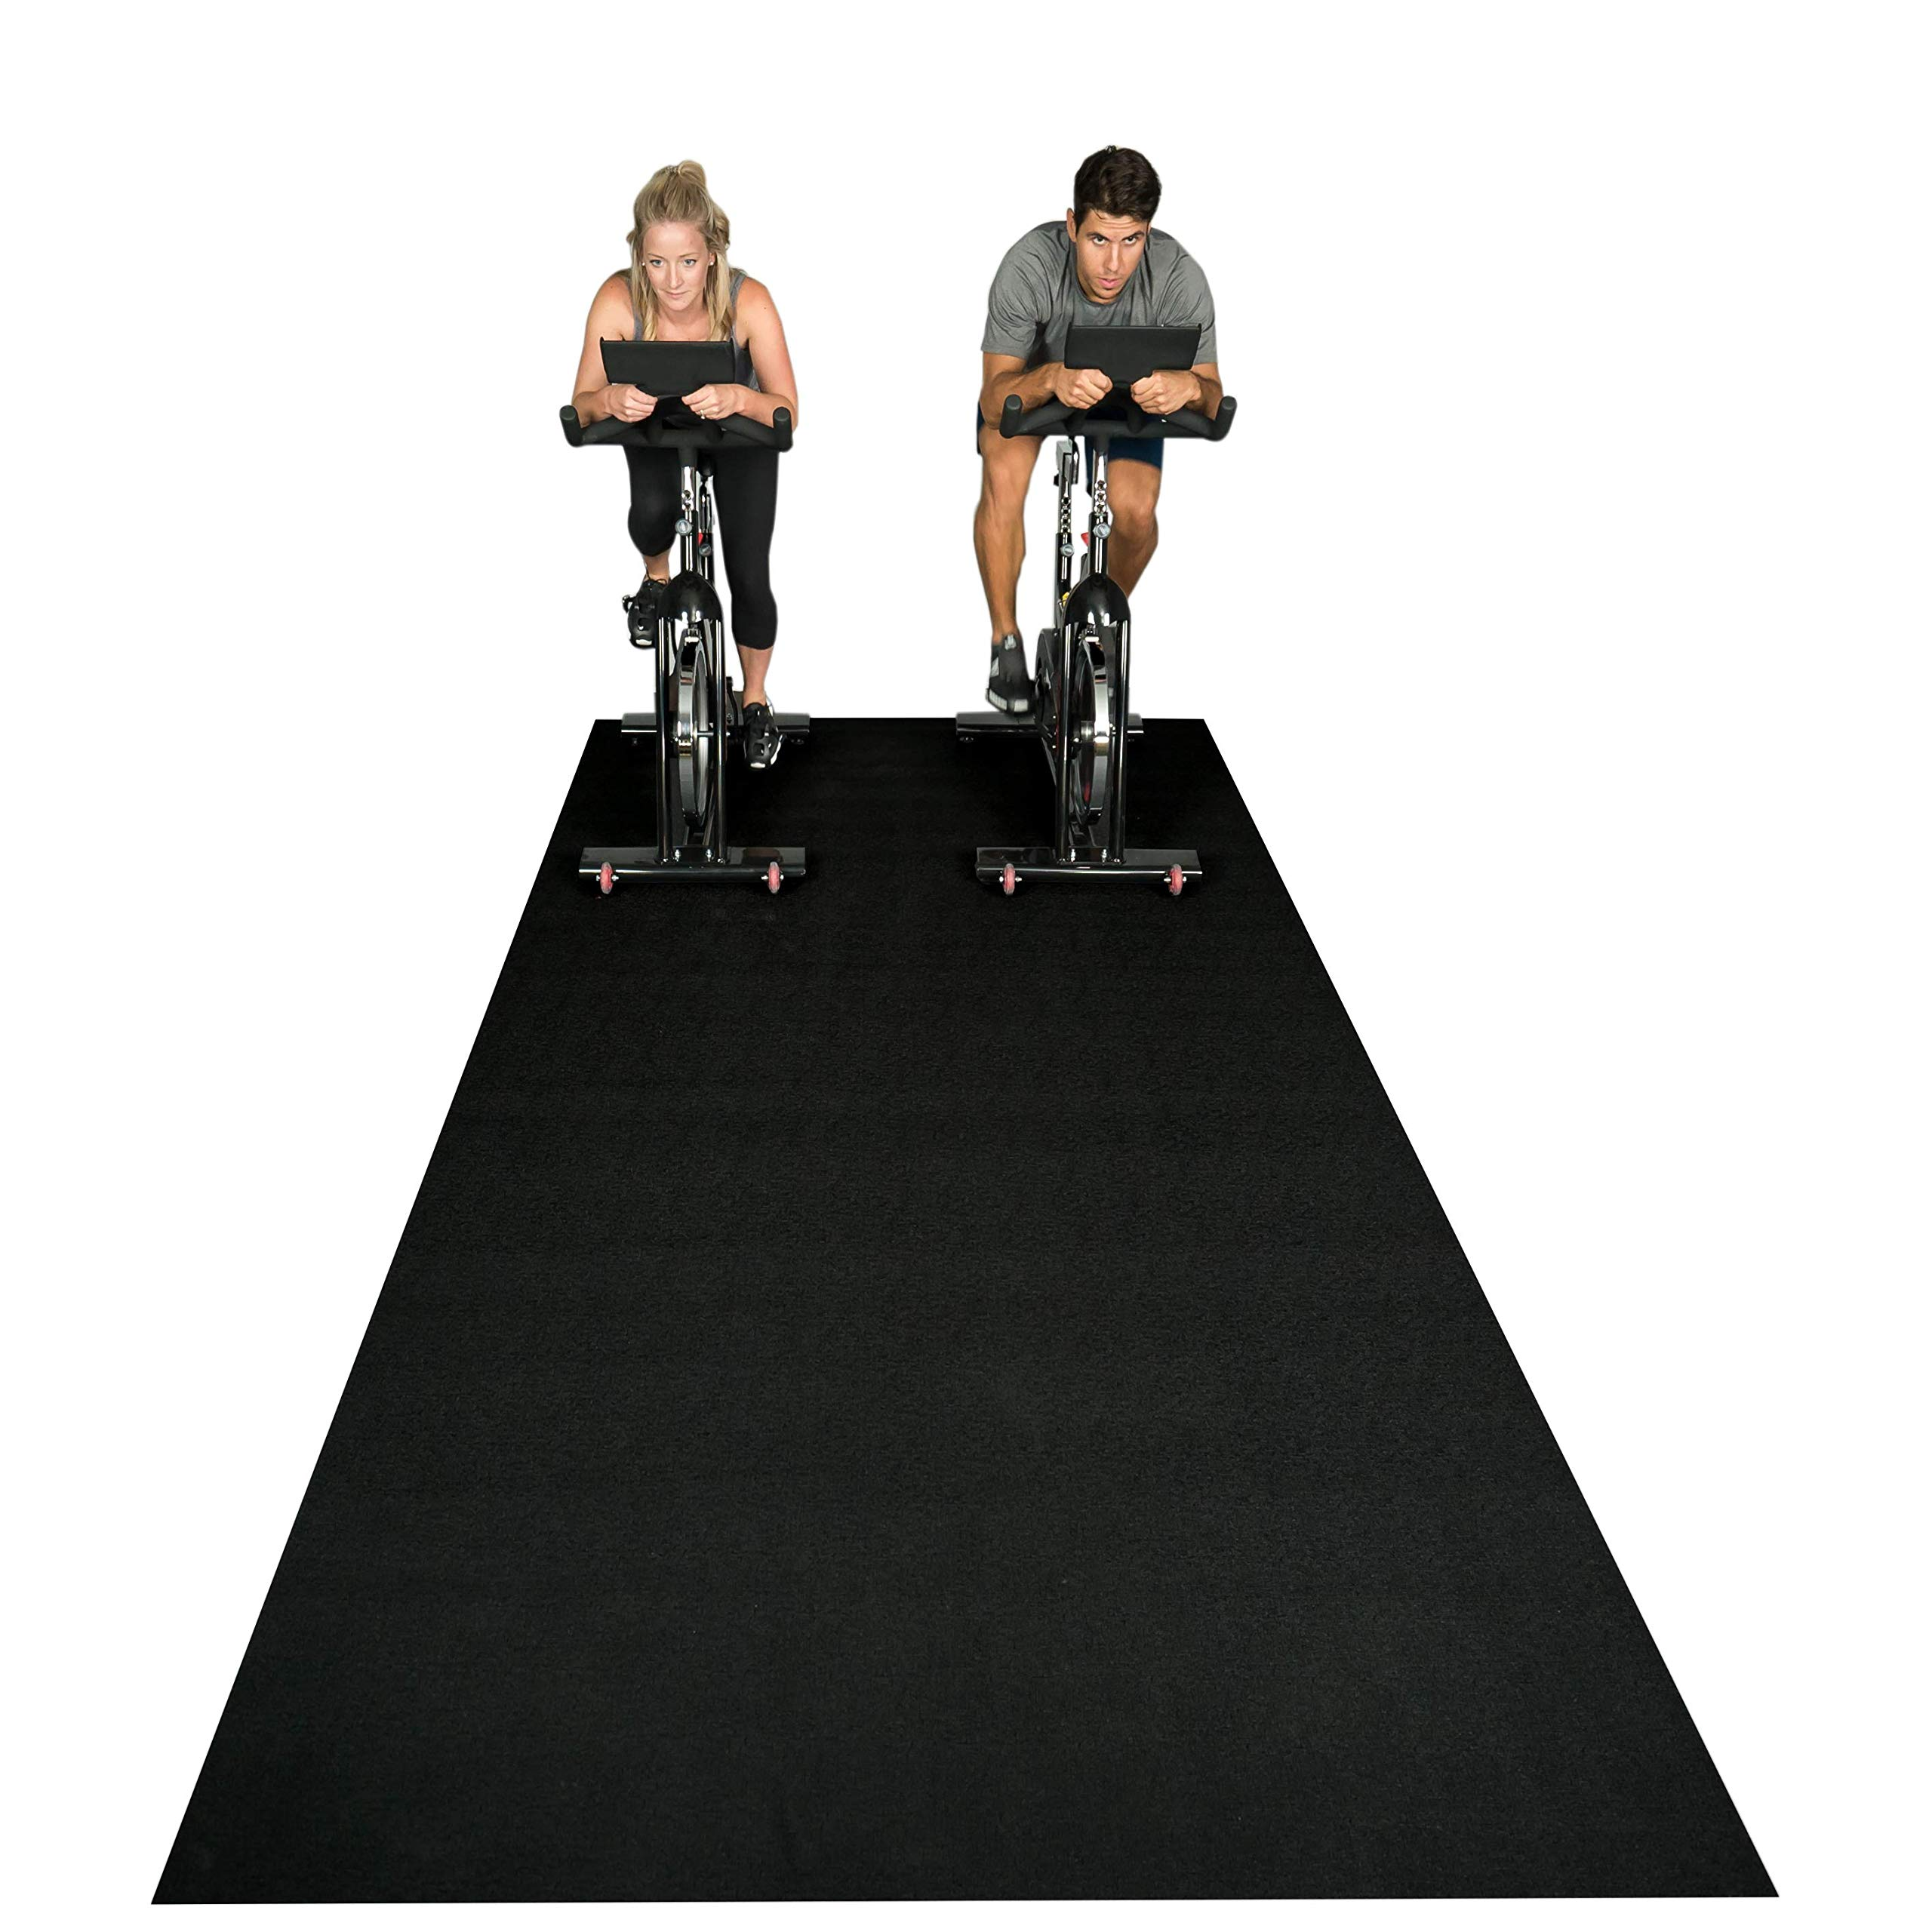 Square36 New Large Fitness Equipment Mat 12 Ft x 6 Ft. Made in Germany - Highest Grade Materials. Our Gym Flooring Mat Fits Multiple Fitness Machines - Idea for Ellipticals, Rowers, Treadmills.